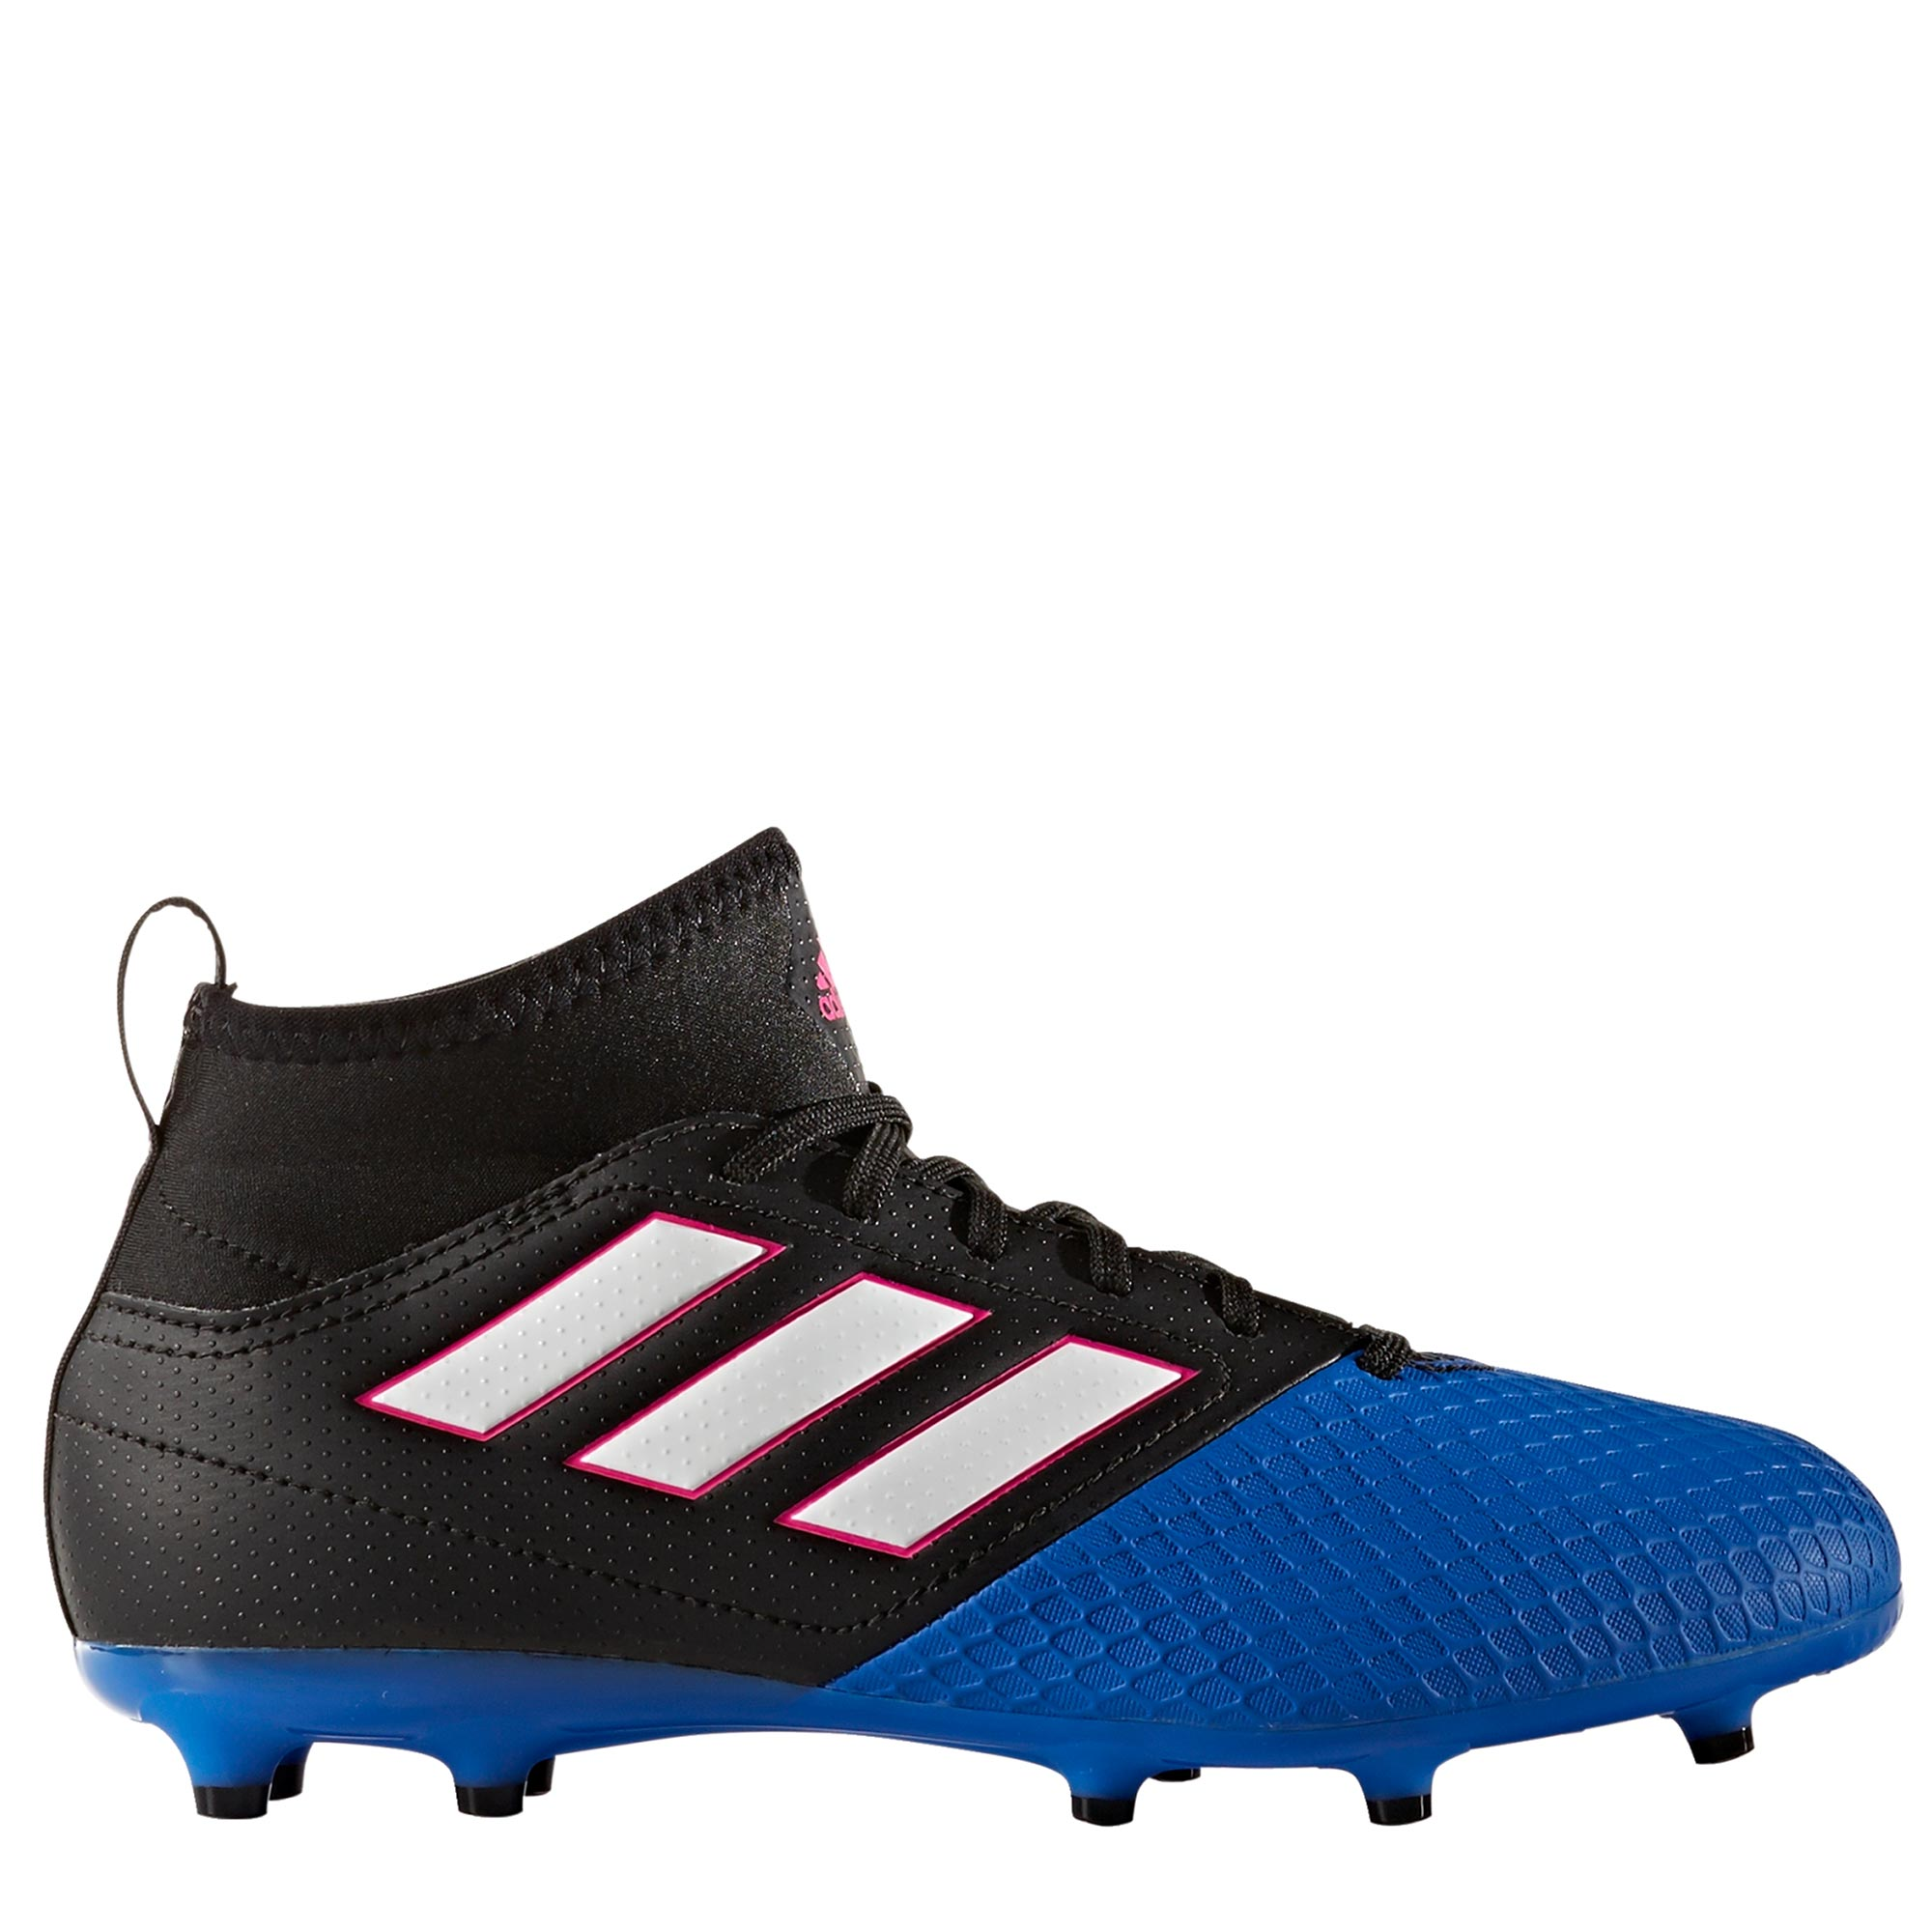 adidas Ace 17.3 Firm Ground Football Boots - Core Black/White/Blue - K